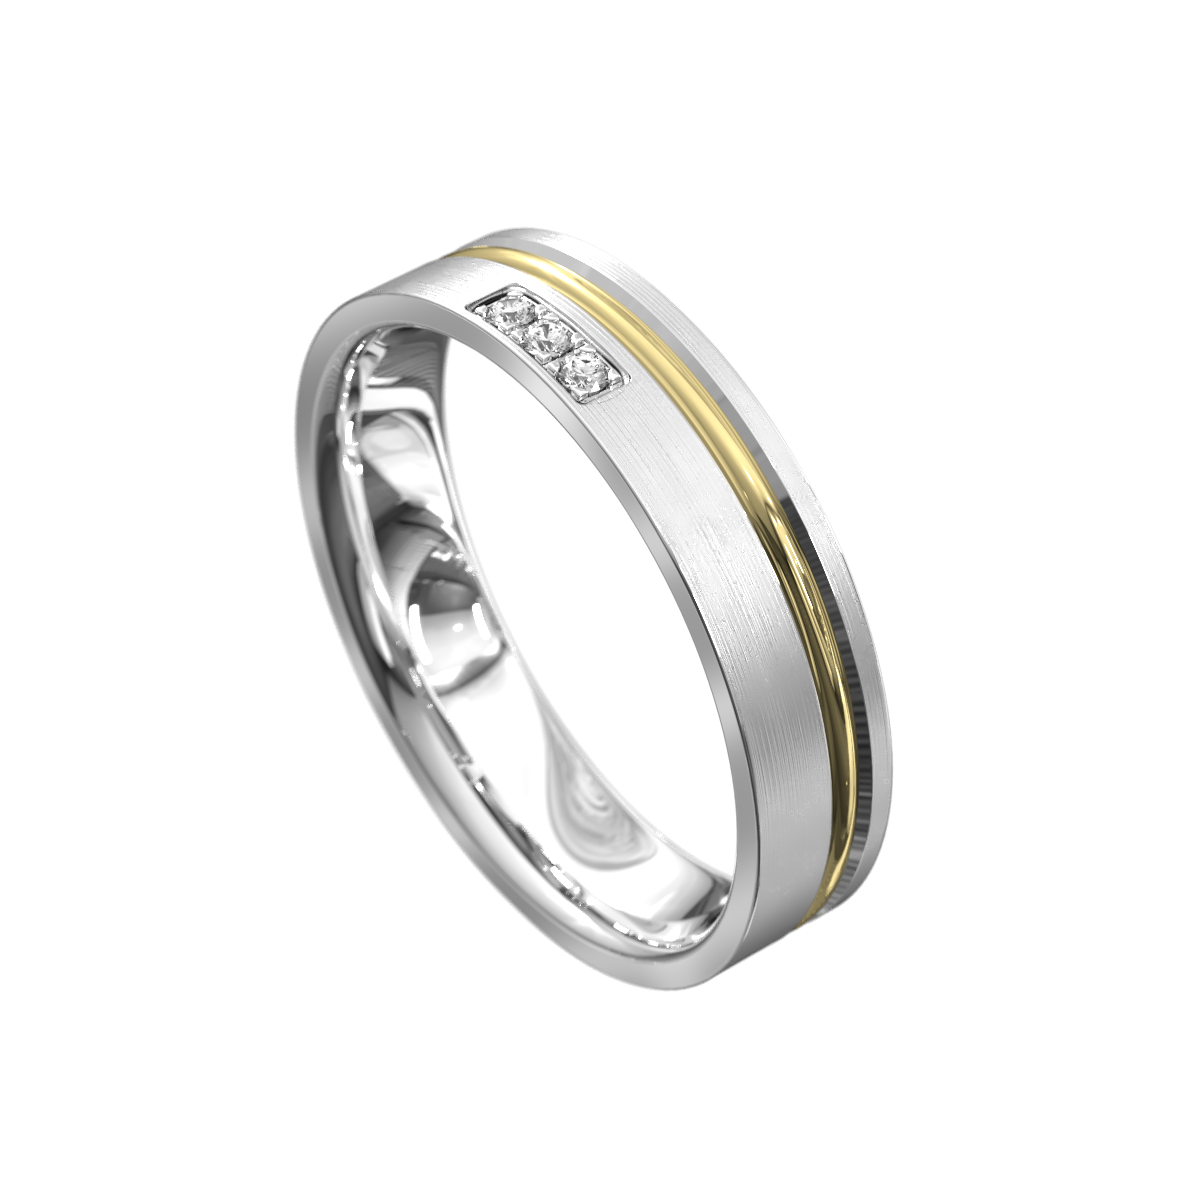 Brushed White and Yellow Gold Mens Ring